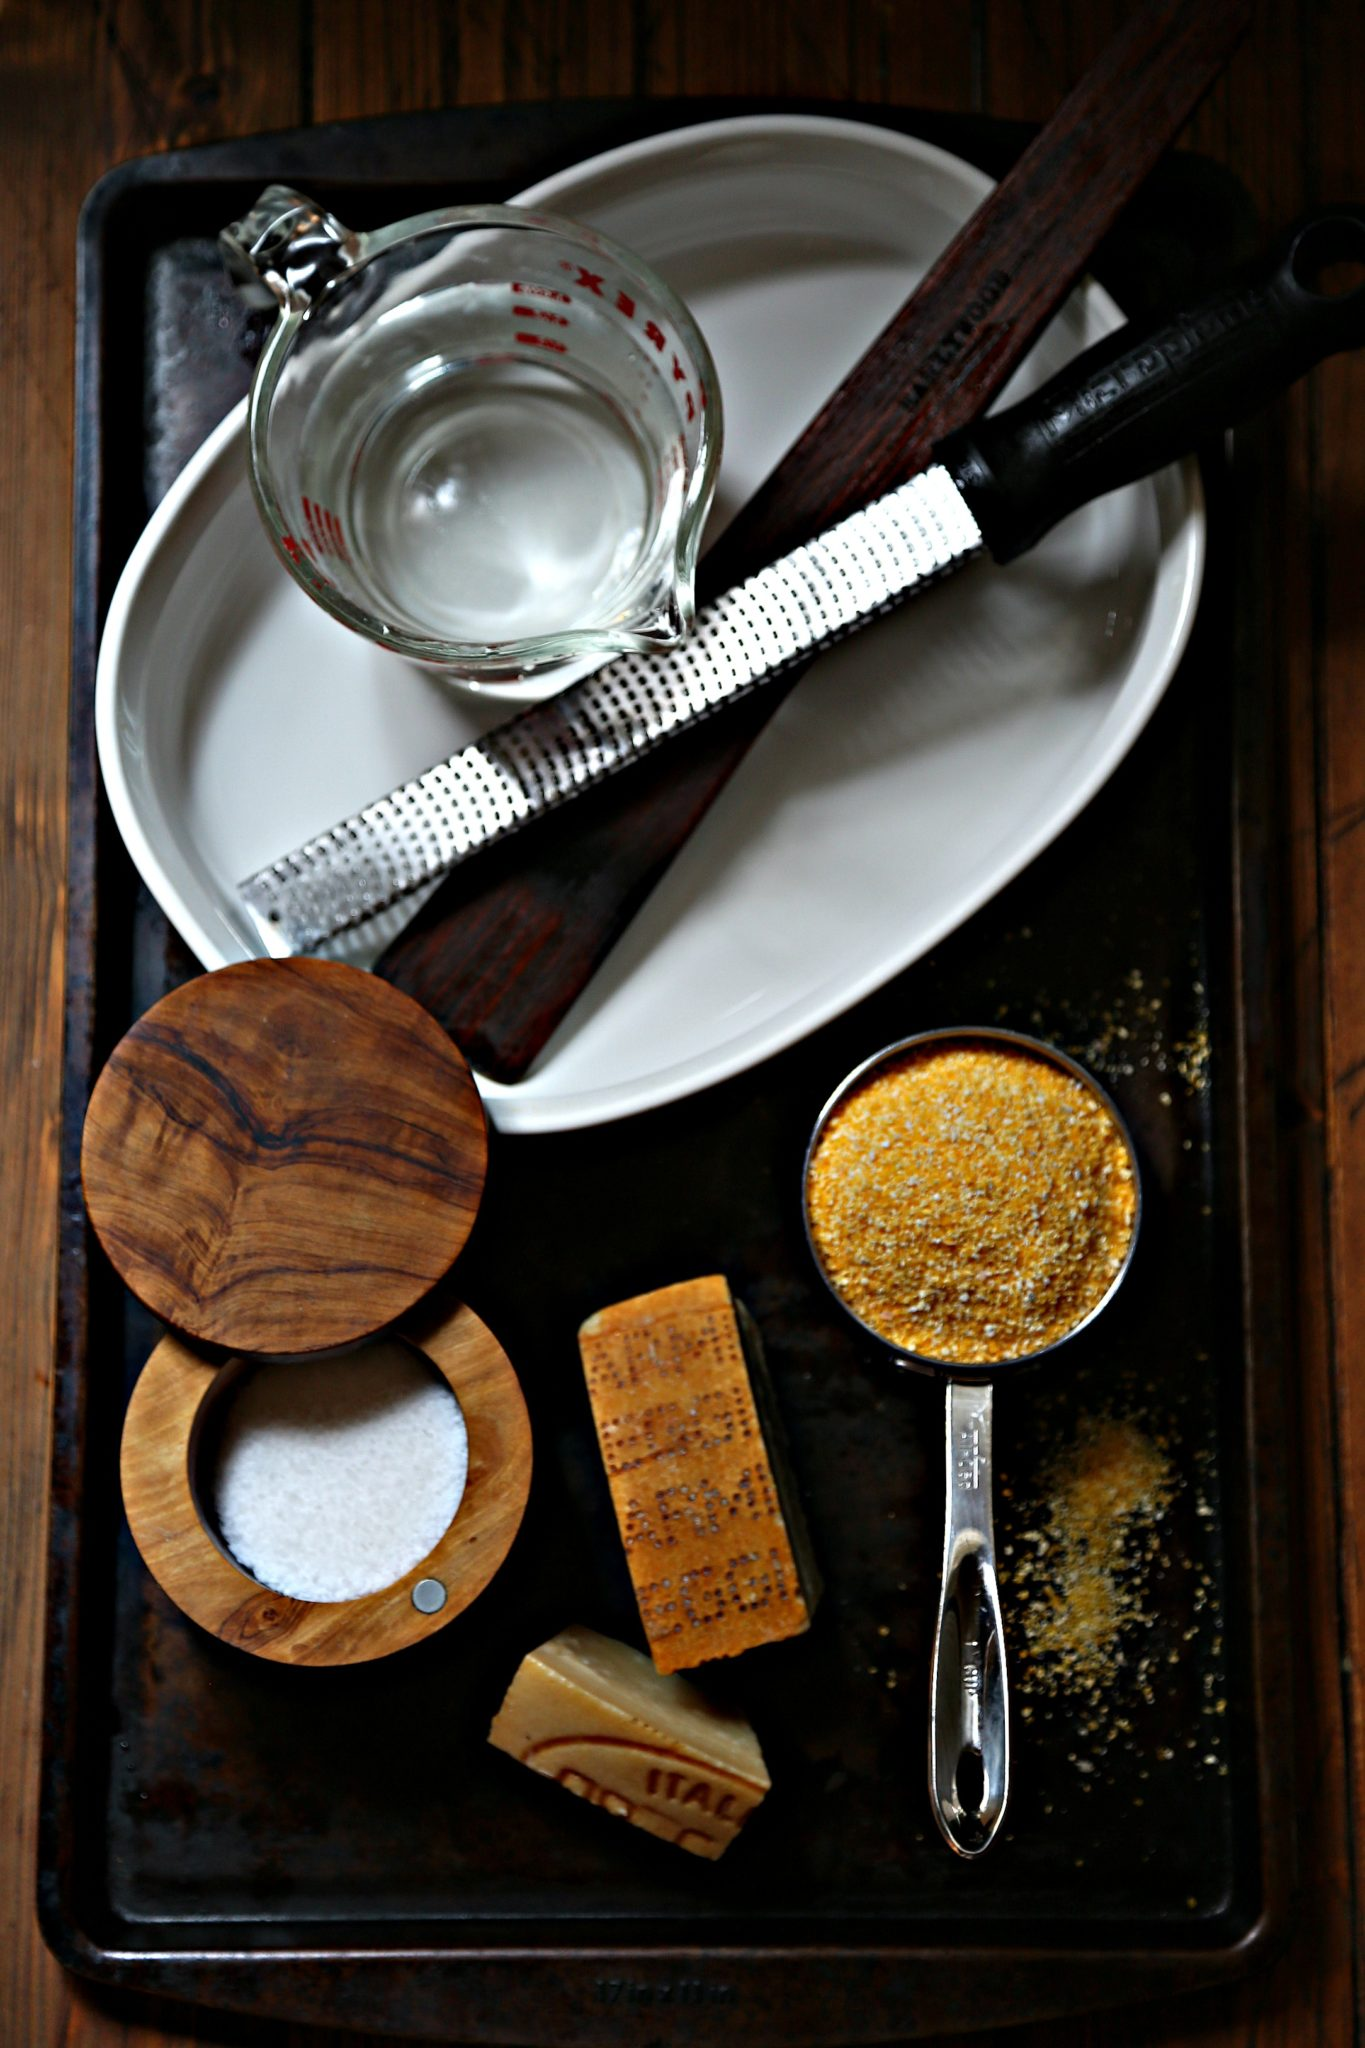 polenta cakes ingredients and tools wood background via bell'alimento